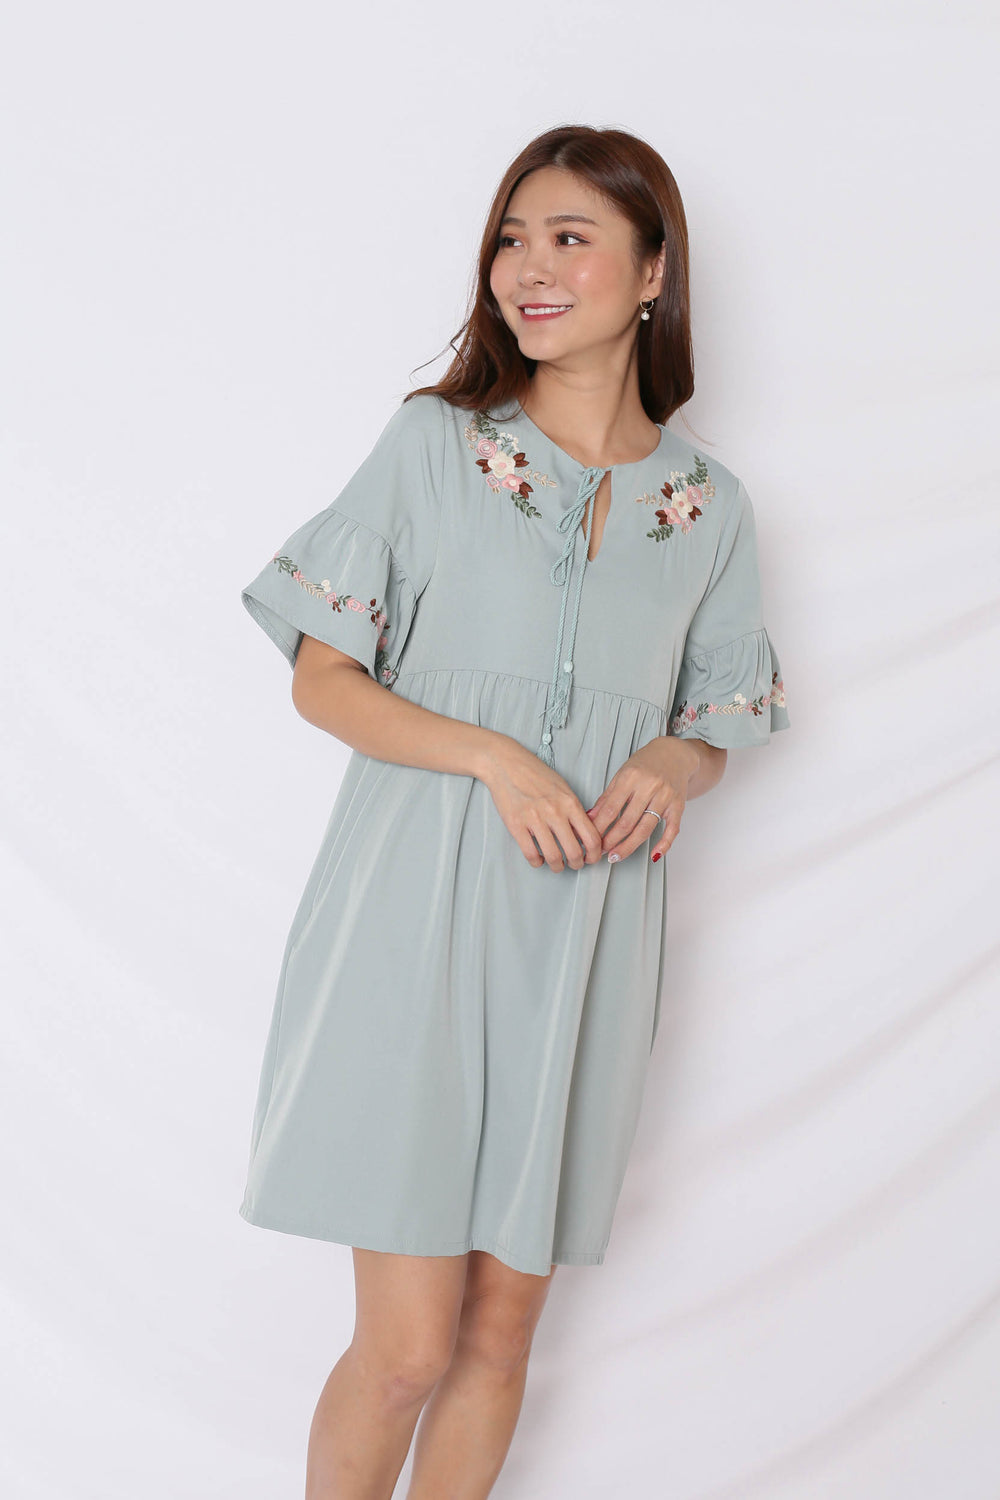 (PREMIUM) GYPSY EMBROIDERY TASSEL DRESS IN MINT